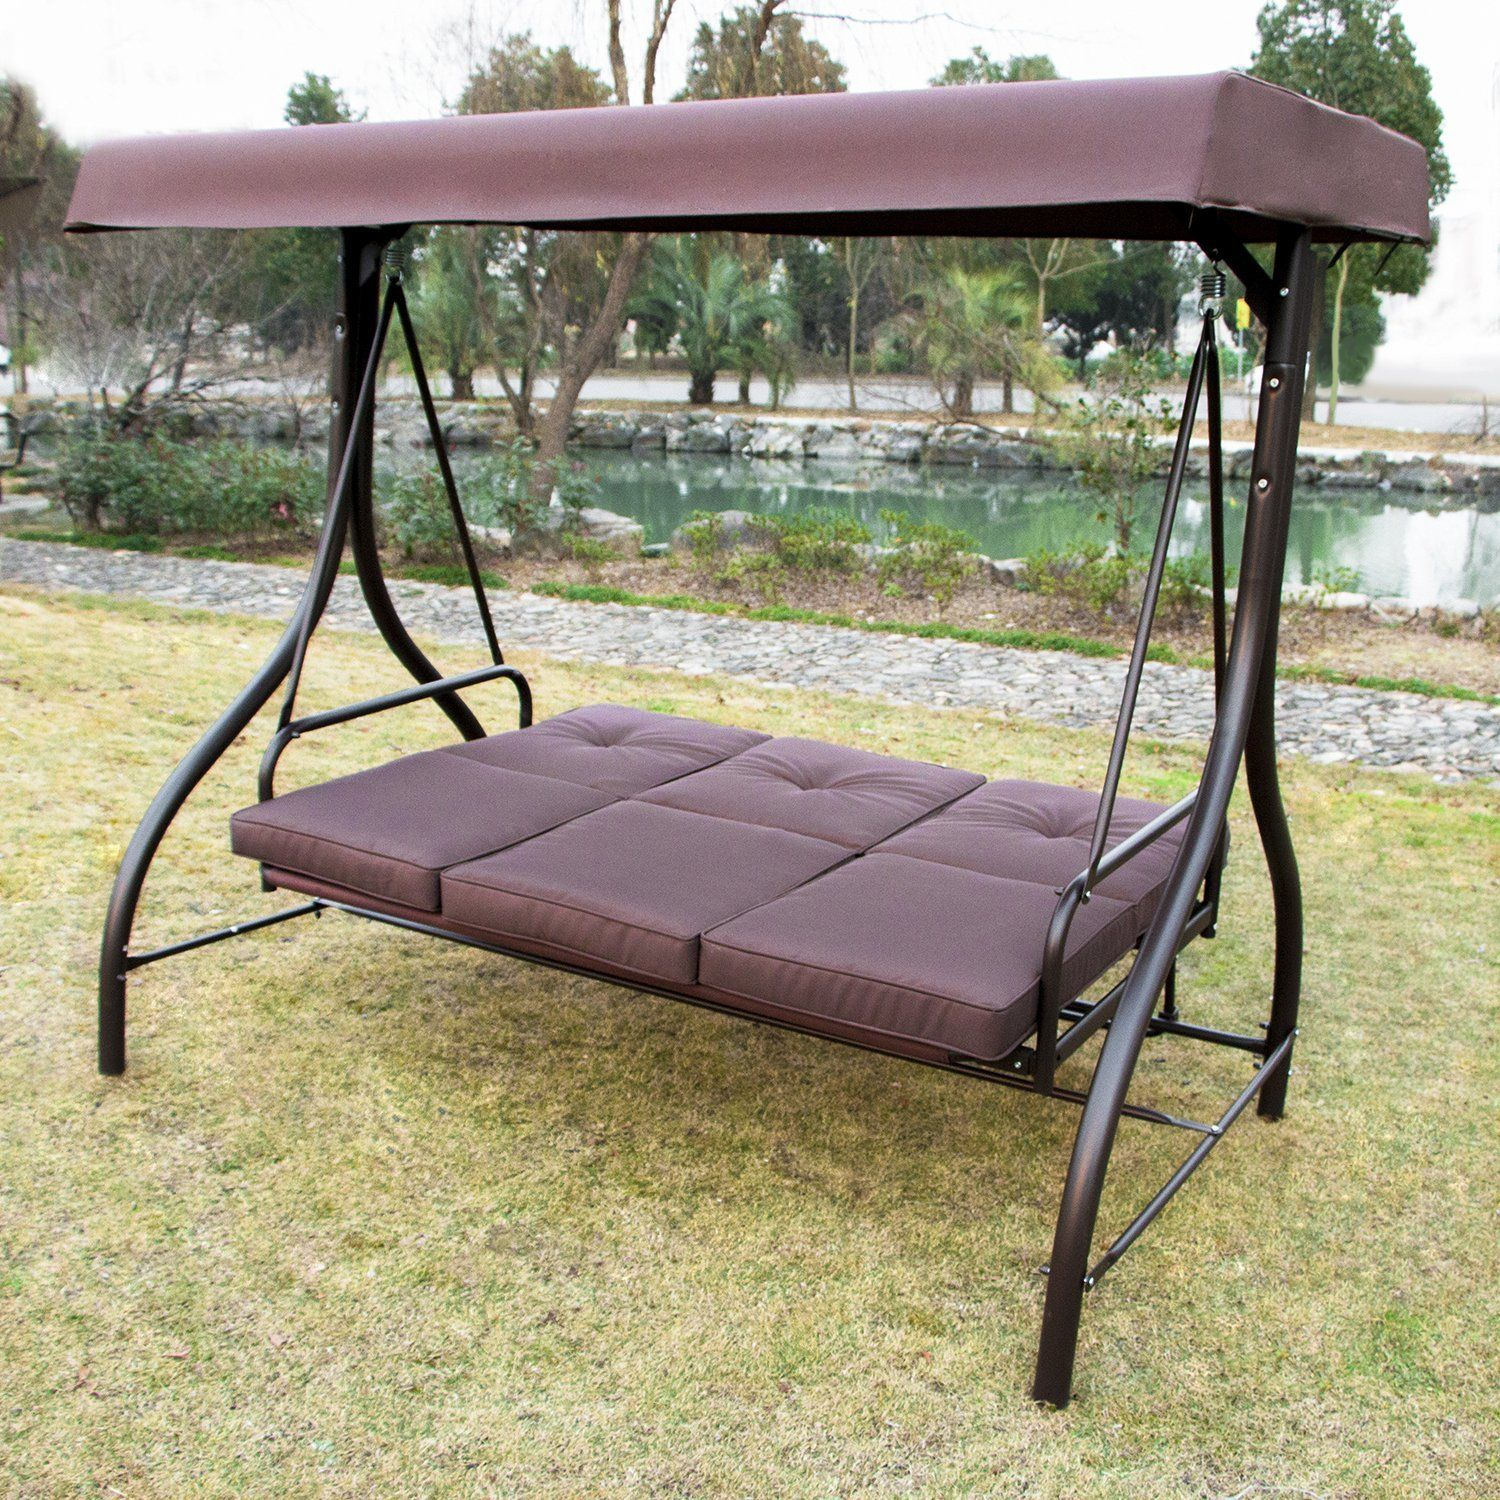 Amazon : Summer Promotion Outdoor Garden Yard Patio With Regard To Black Outdoor Durable Steel Frame Patio Swing Glider Bench Chairs (Image 3 of 25)